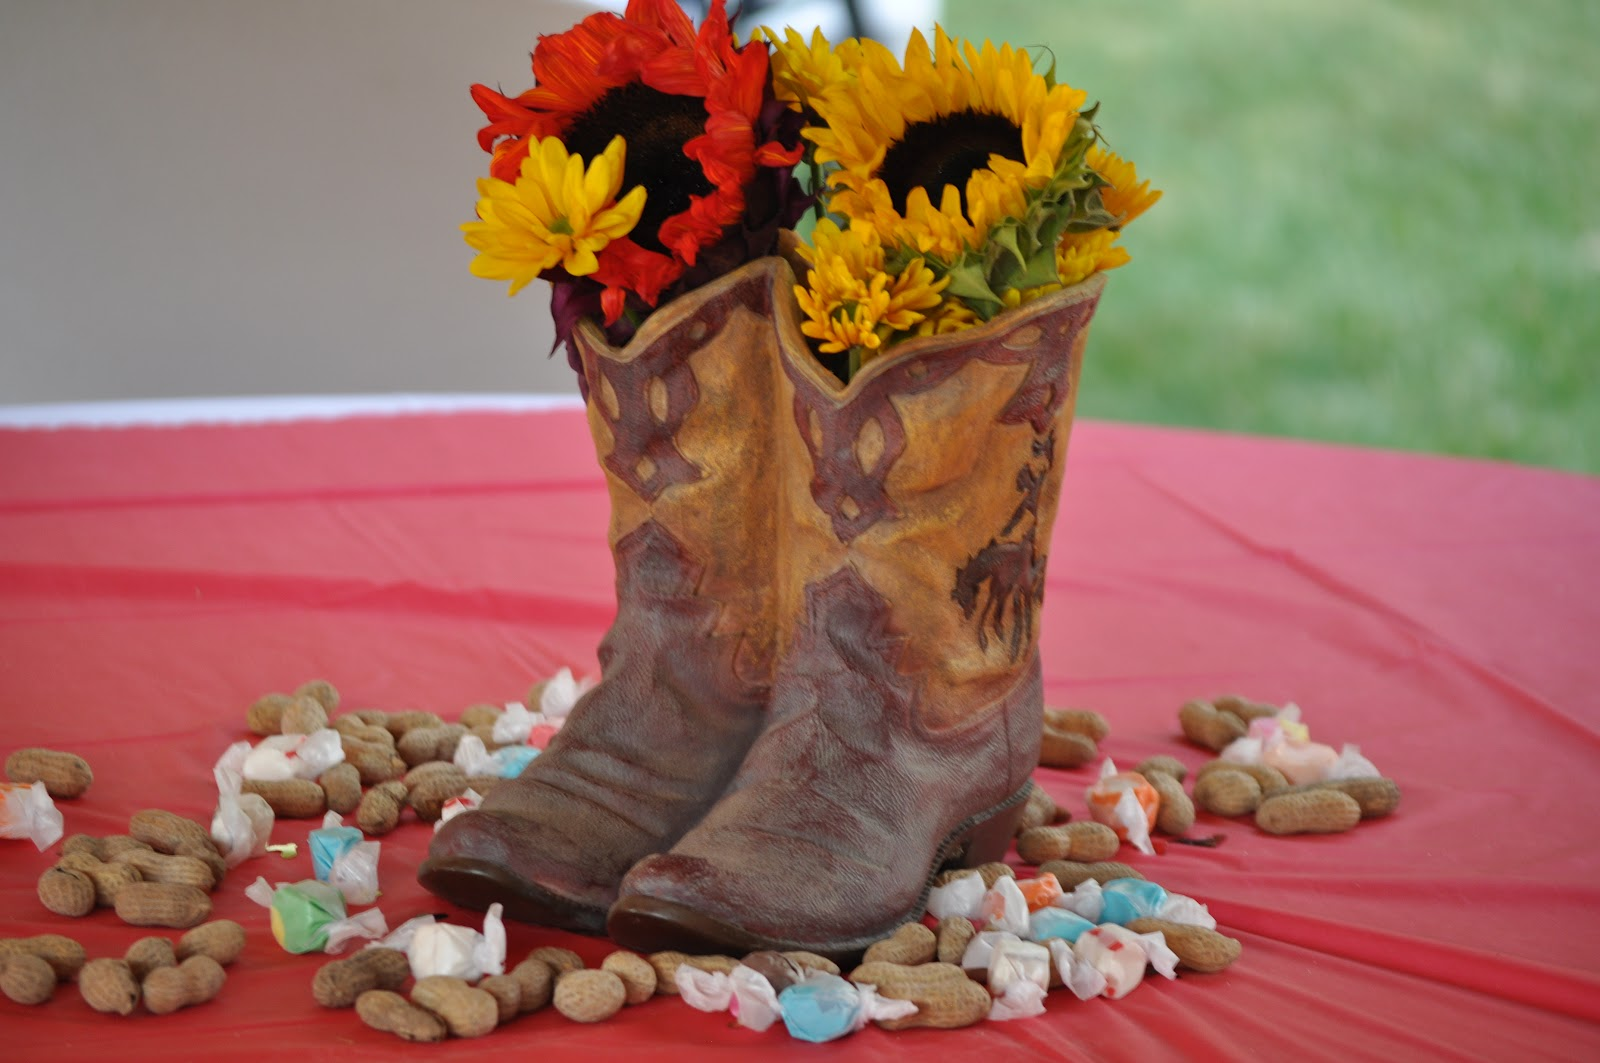 Cowboy birthday party ideas events to celebrate for Decoration ideas